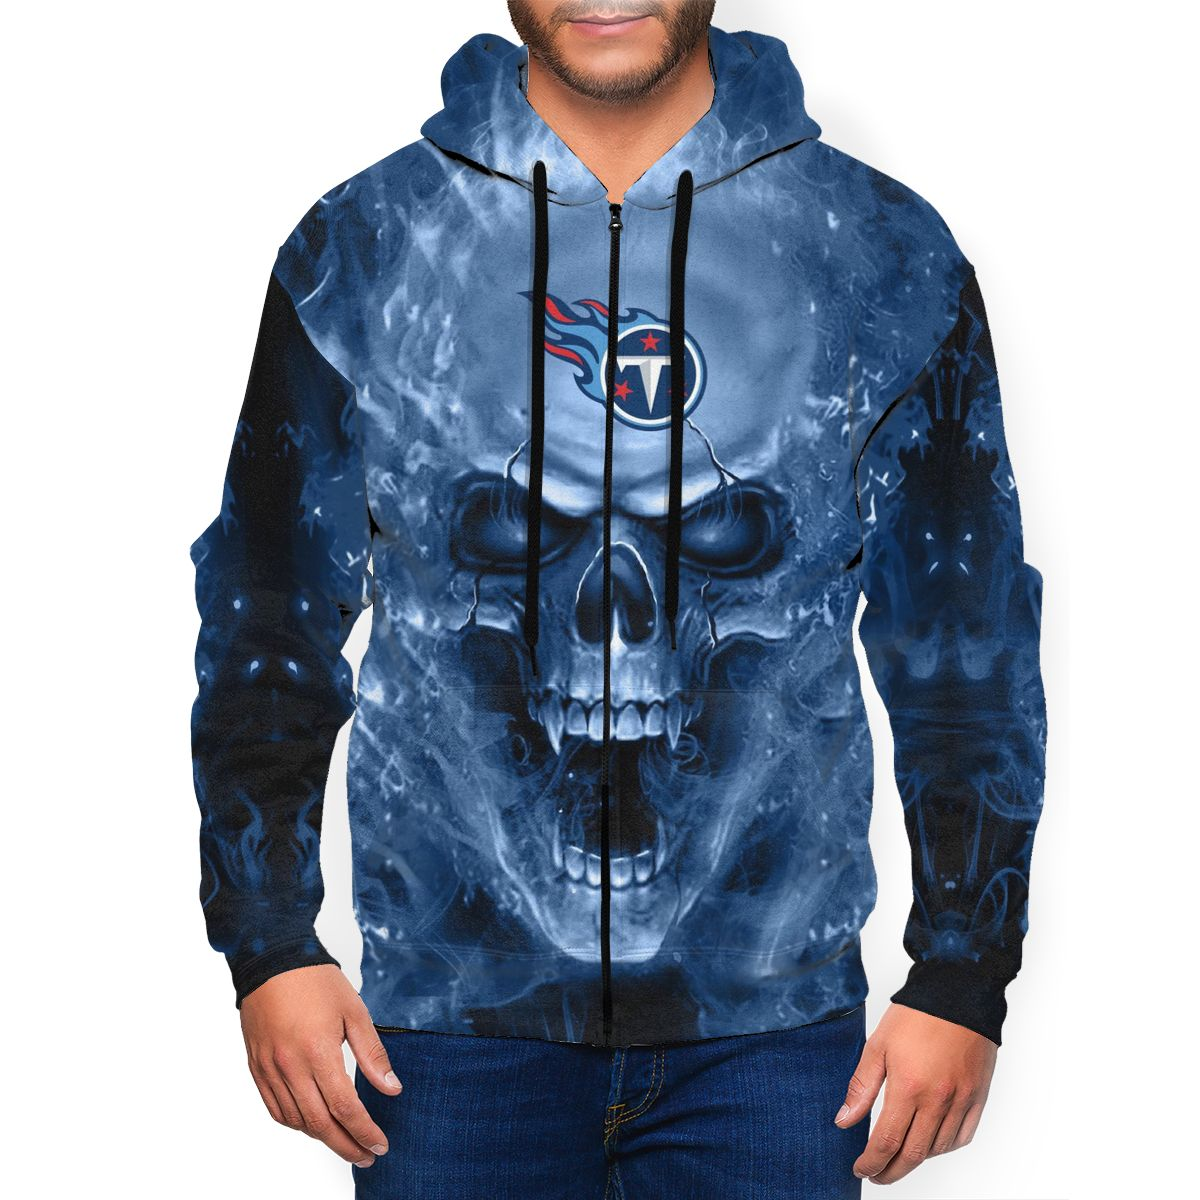 3D Skull Titans Men's Zip Hooded Sweatshirt